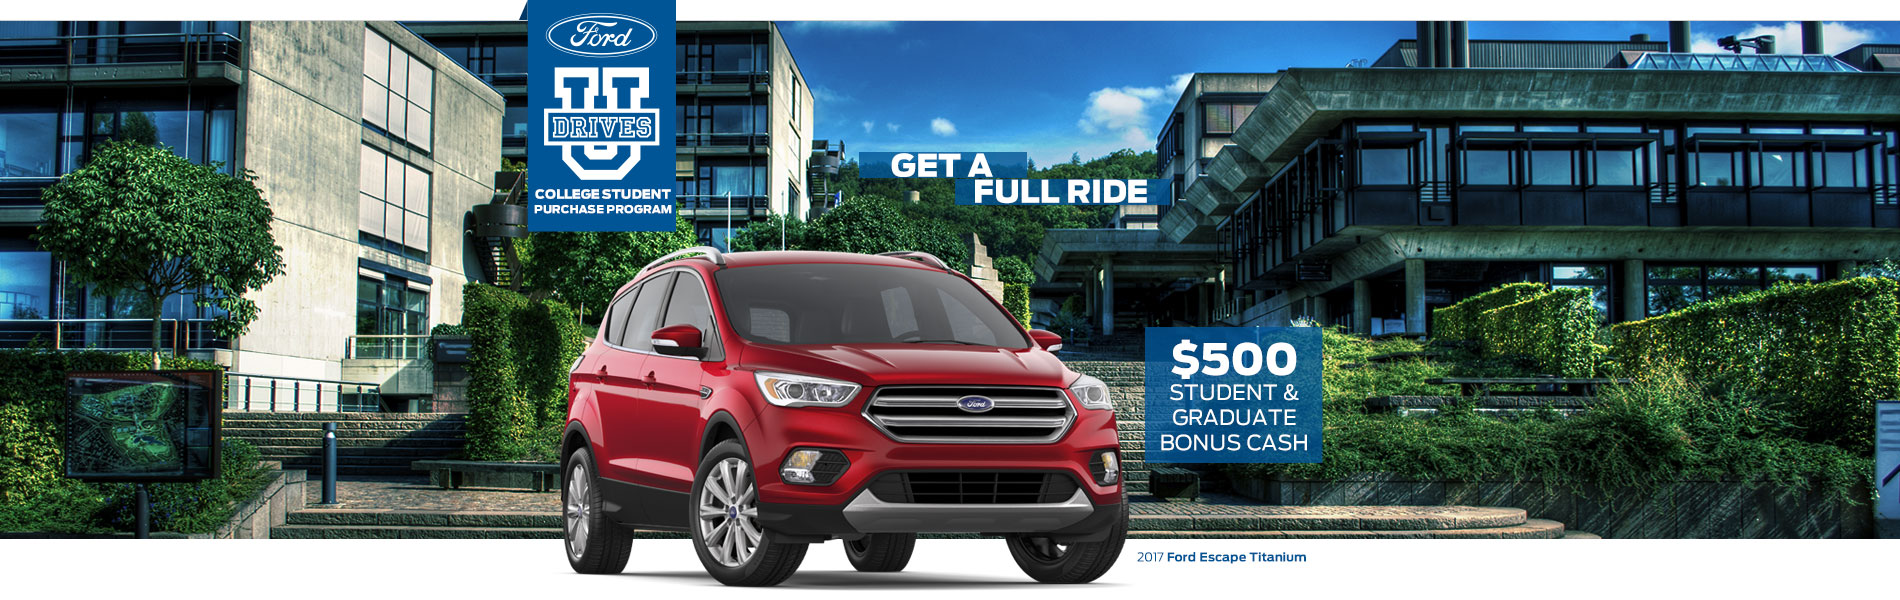 College Student & Graduate $500 Bonus Cash - Joe Cotton Ford